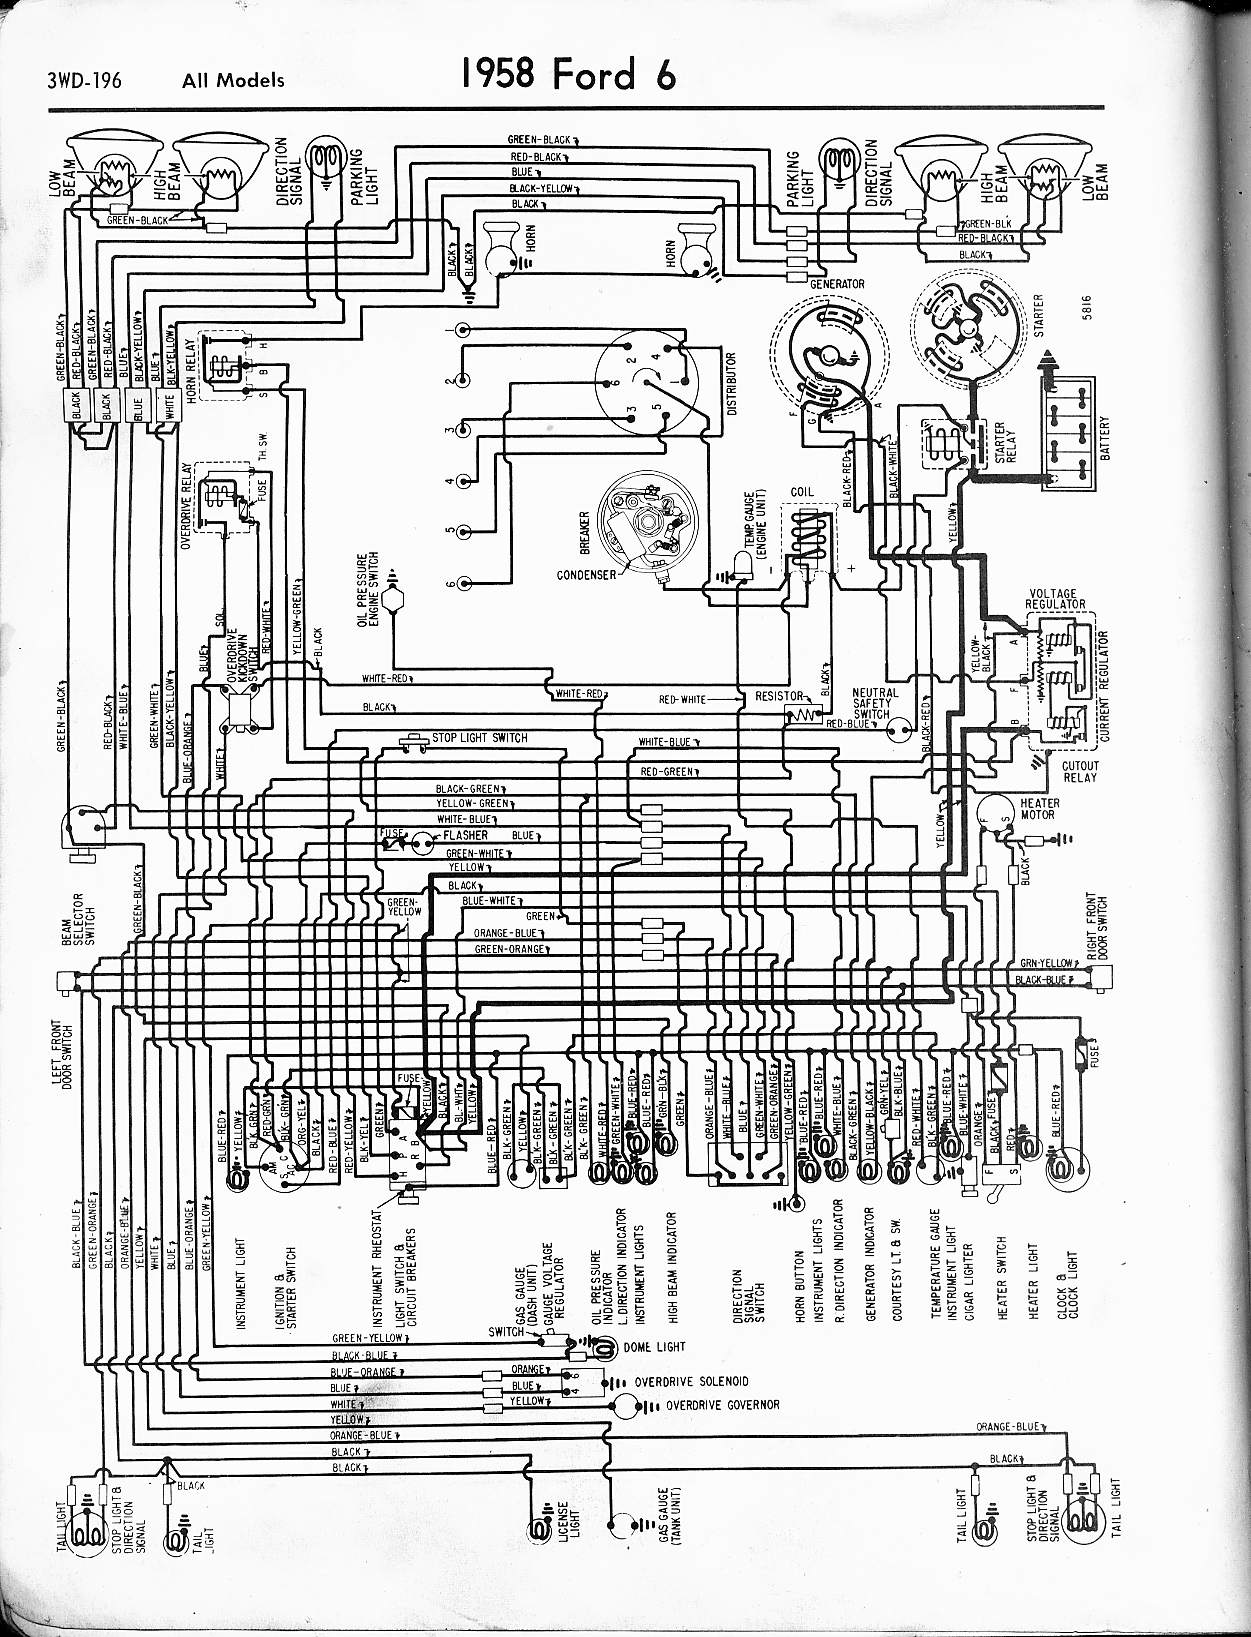 MWire5765 196 1955 ford wiring diagram 2014 dodge 2500 wiring diagram \u2022 free 1955 thunderbird wiring diagram at gsmx.co